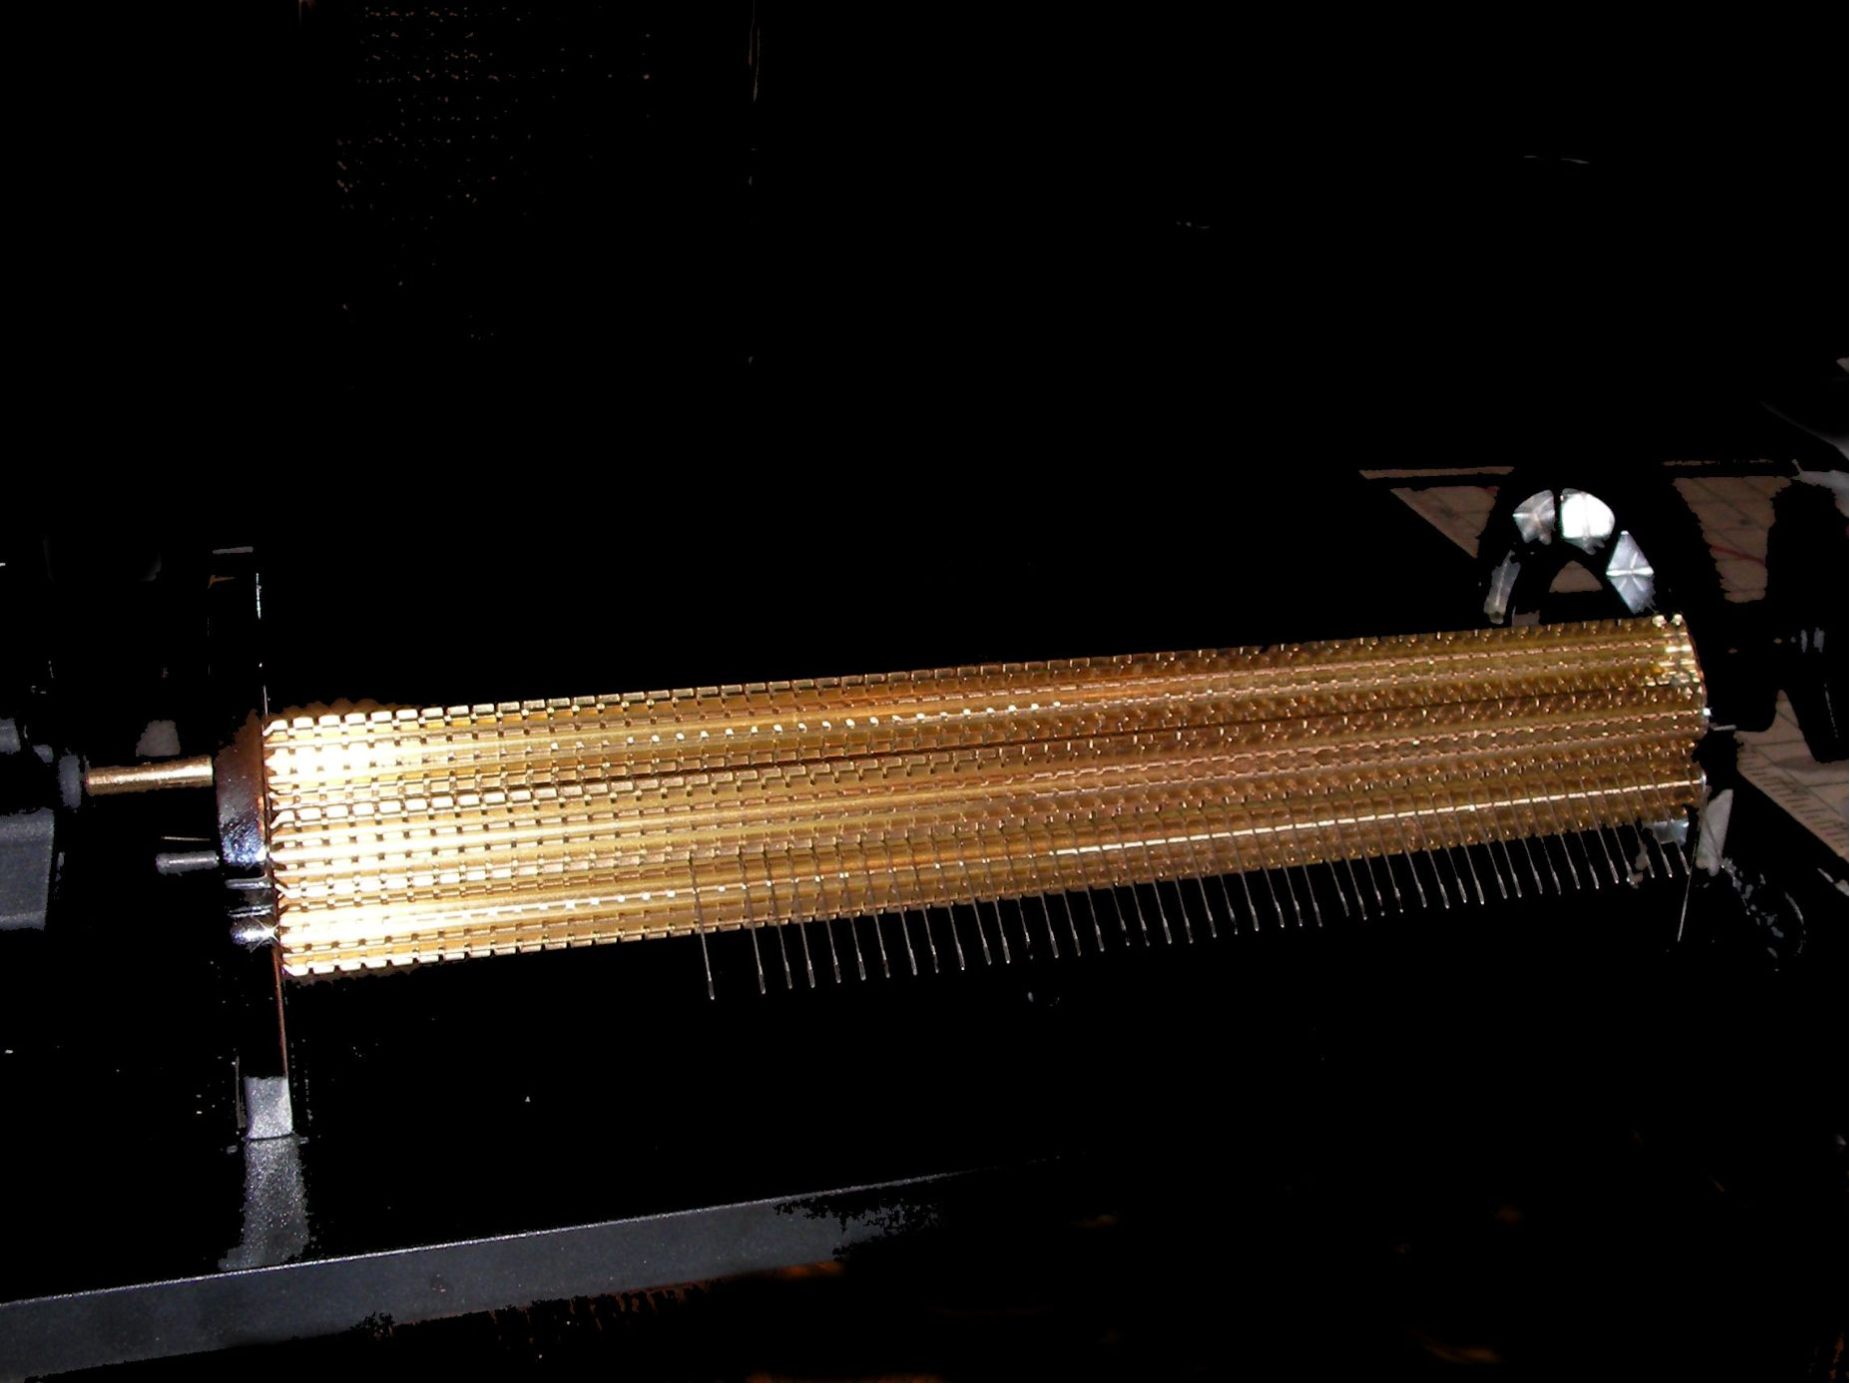 note the modified pleating machine cylinders, to allow using more needles